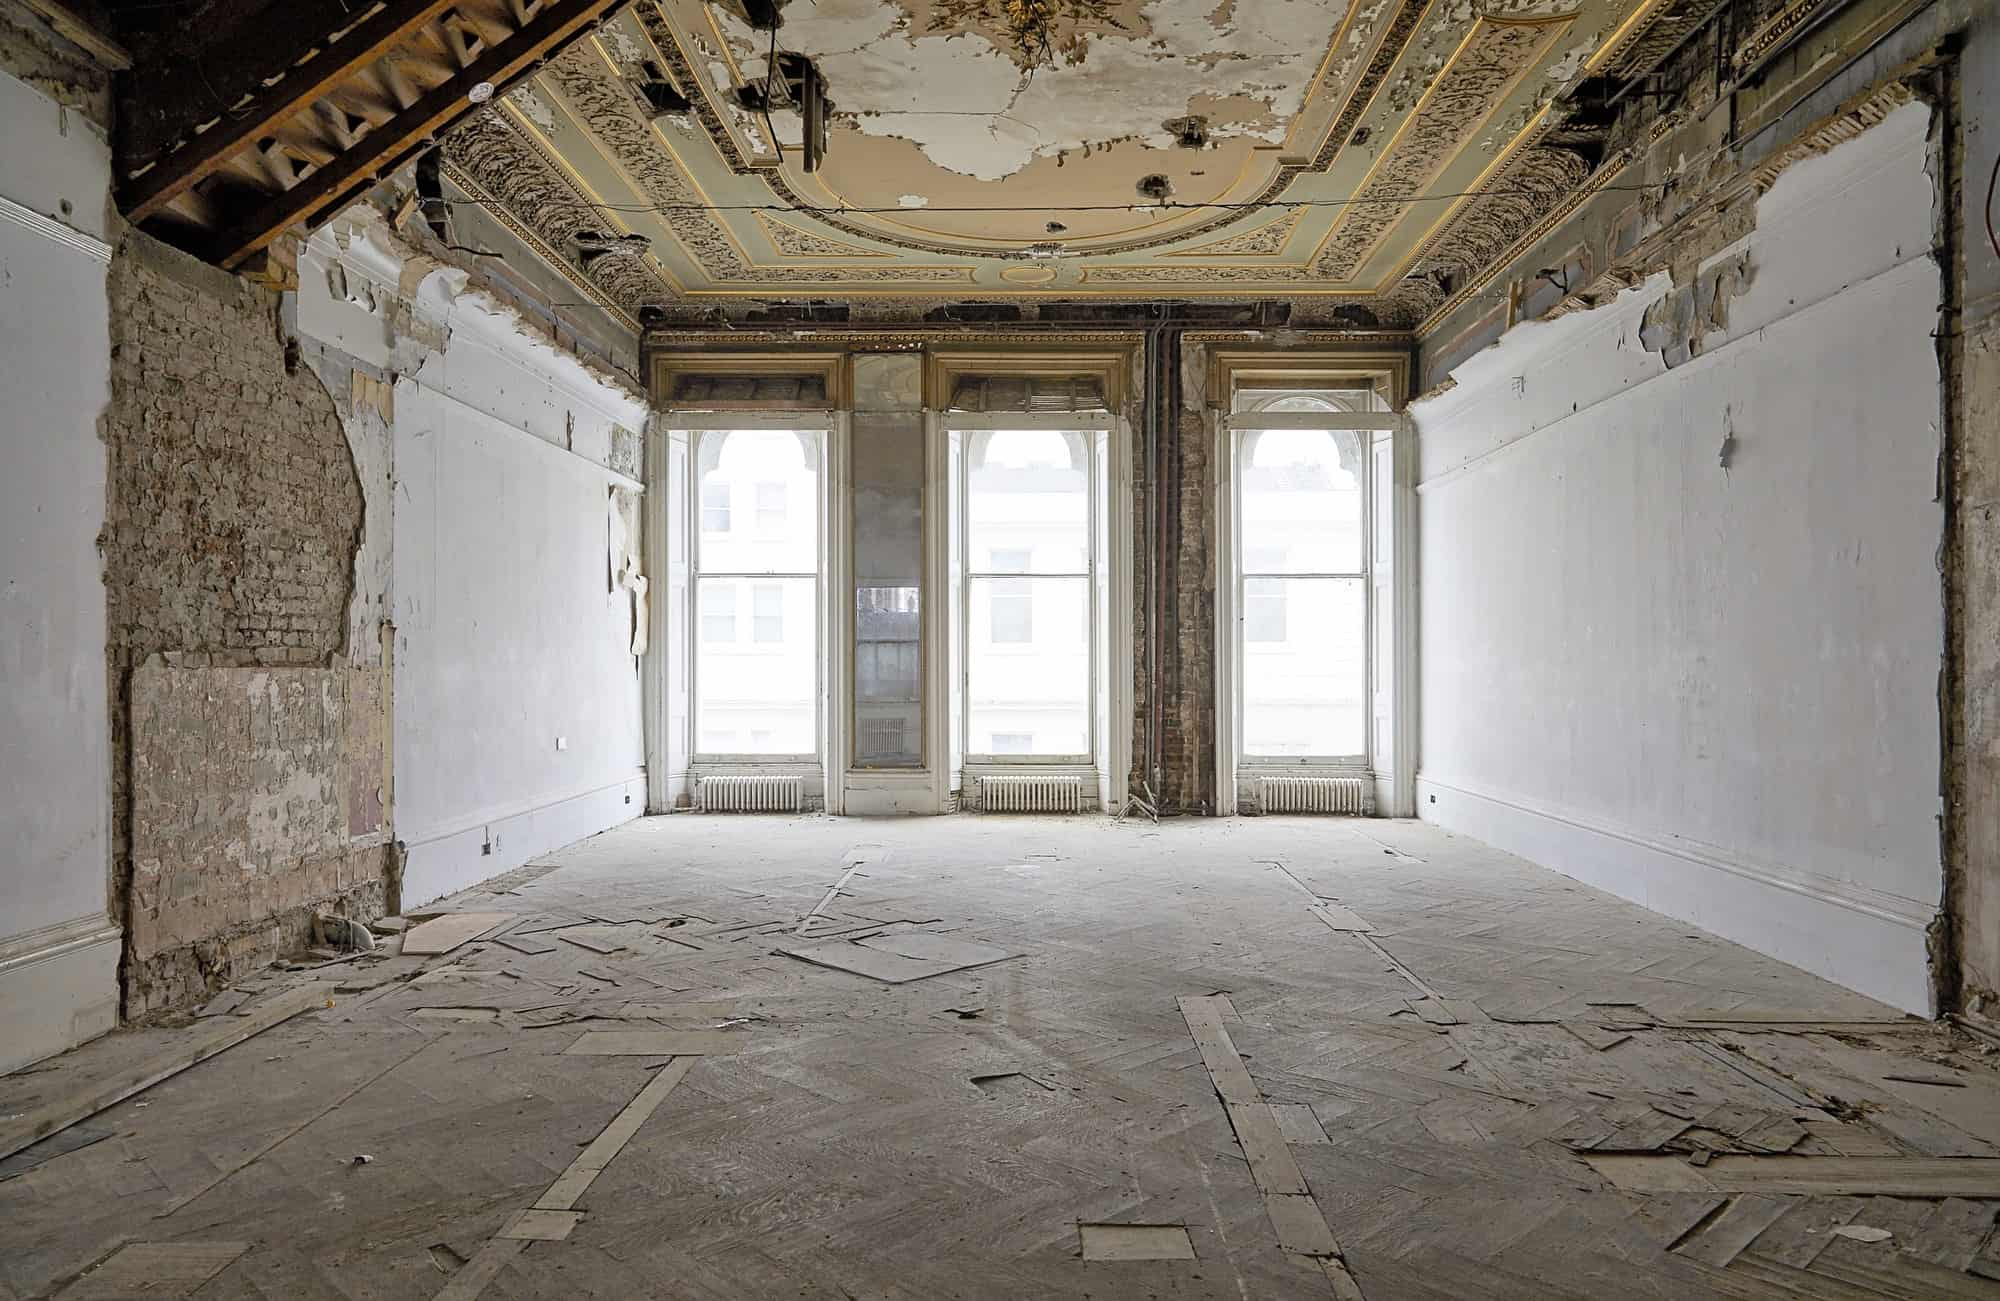 The Averard Hotel W2 - former hotel with derelict interiors - The Location Guys